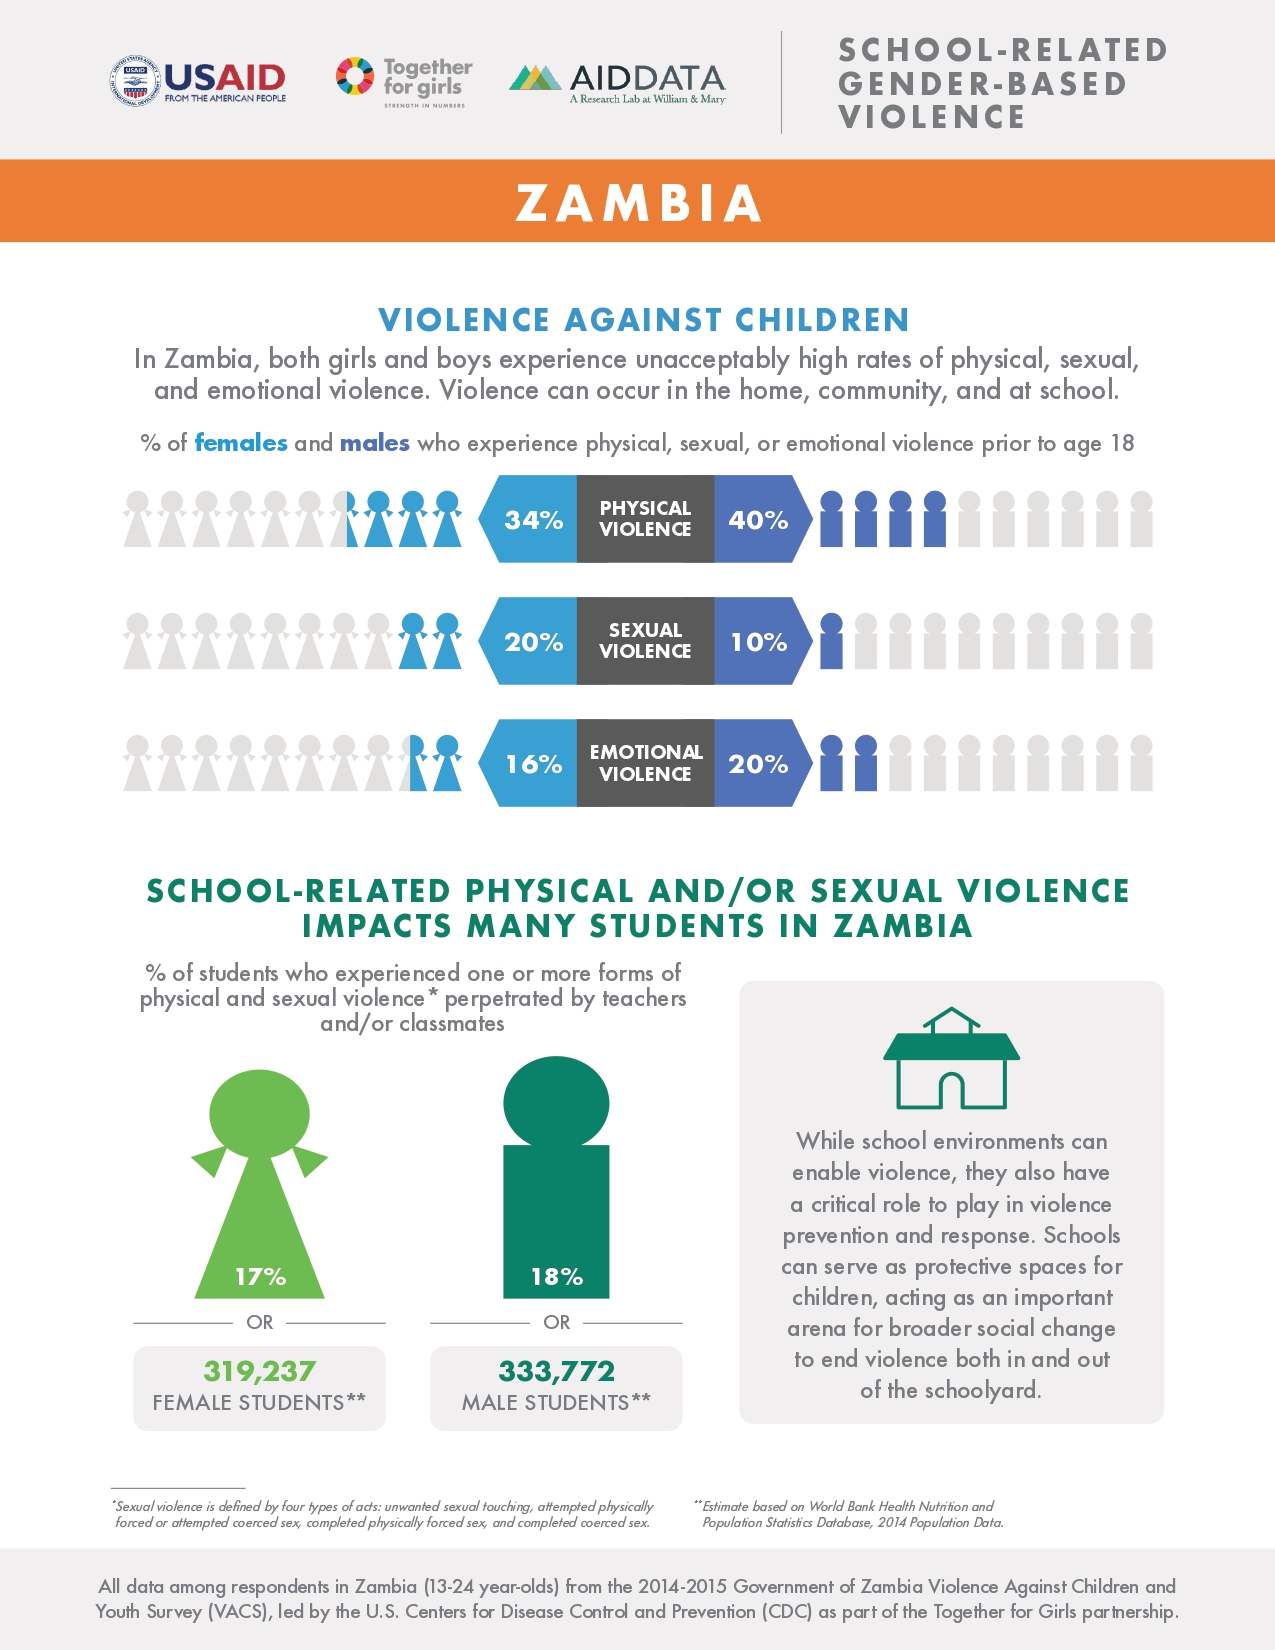 Zambia fact sheet: School-Related Gender-Based Violence